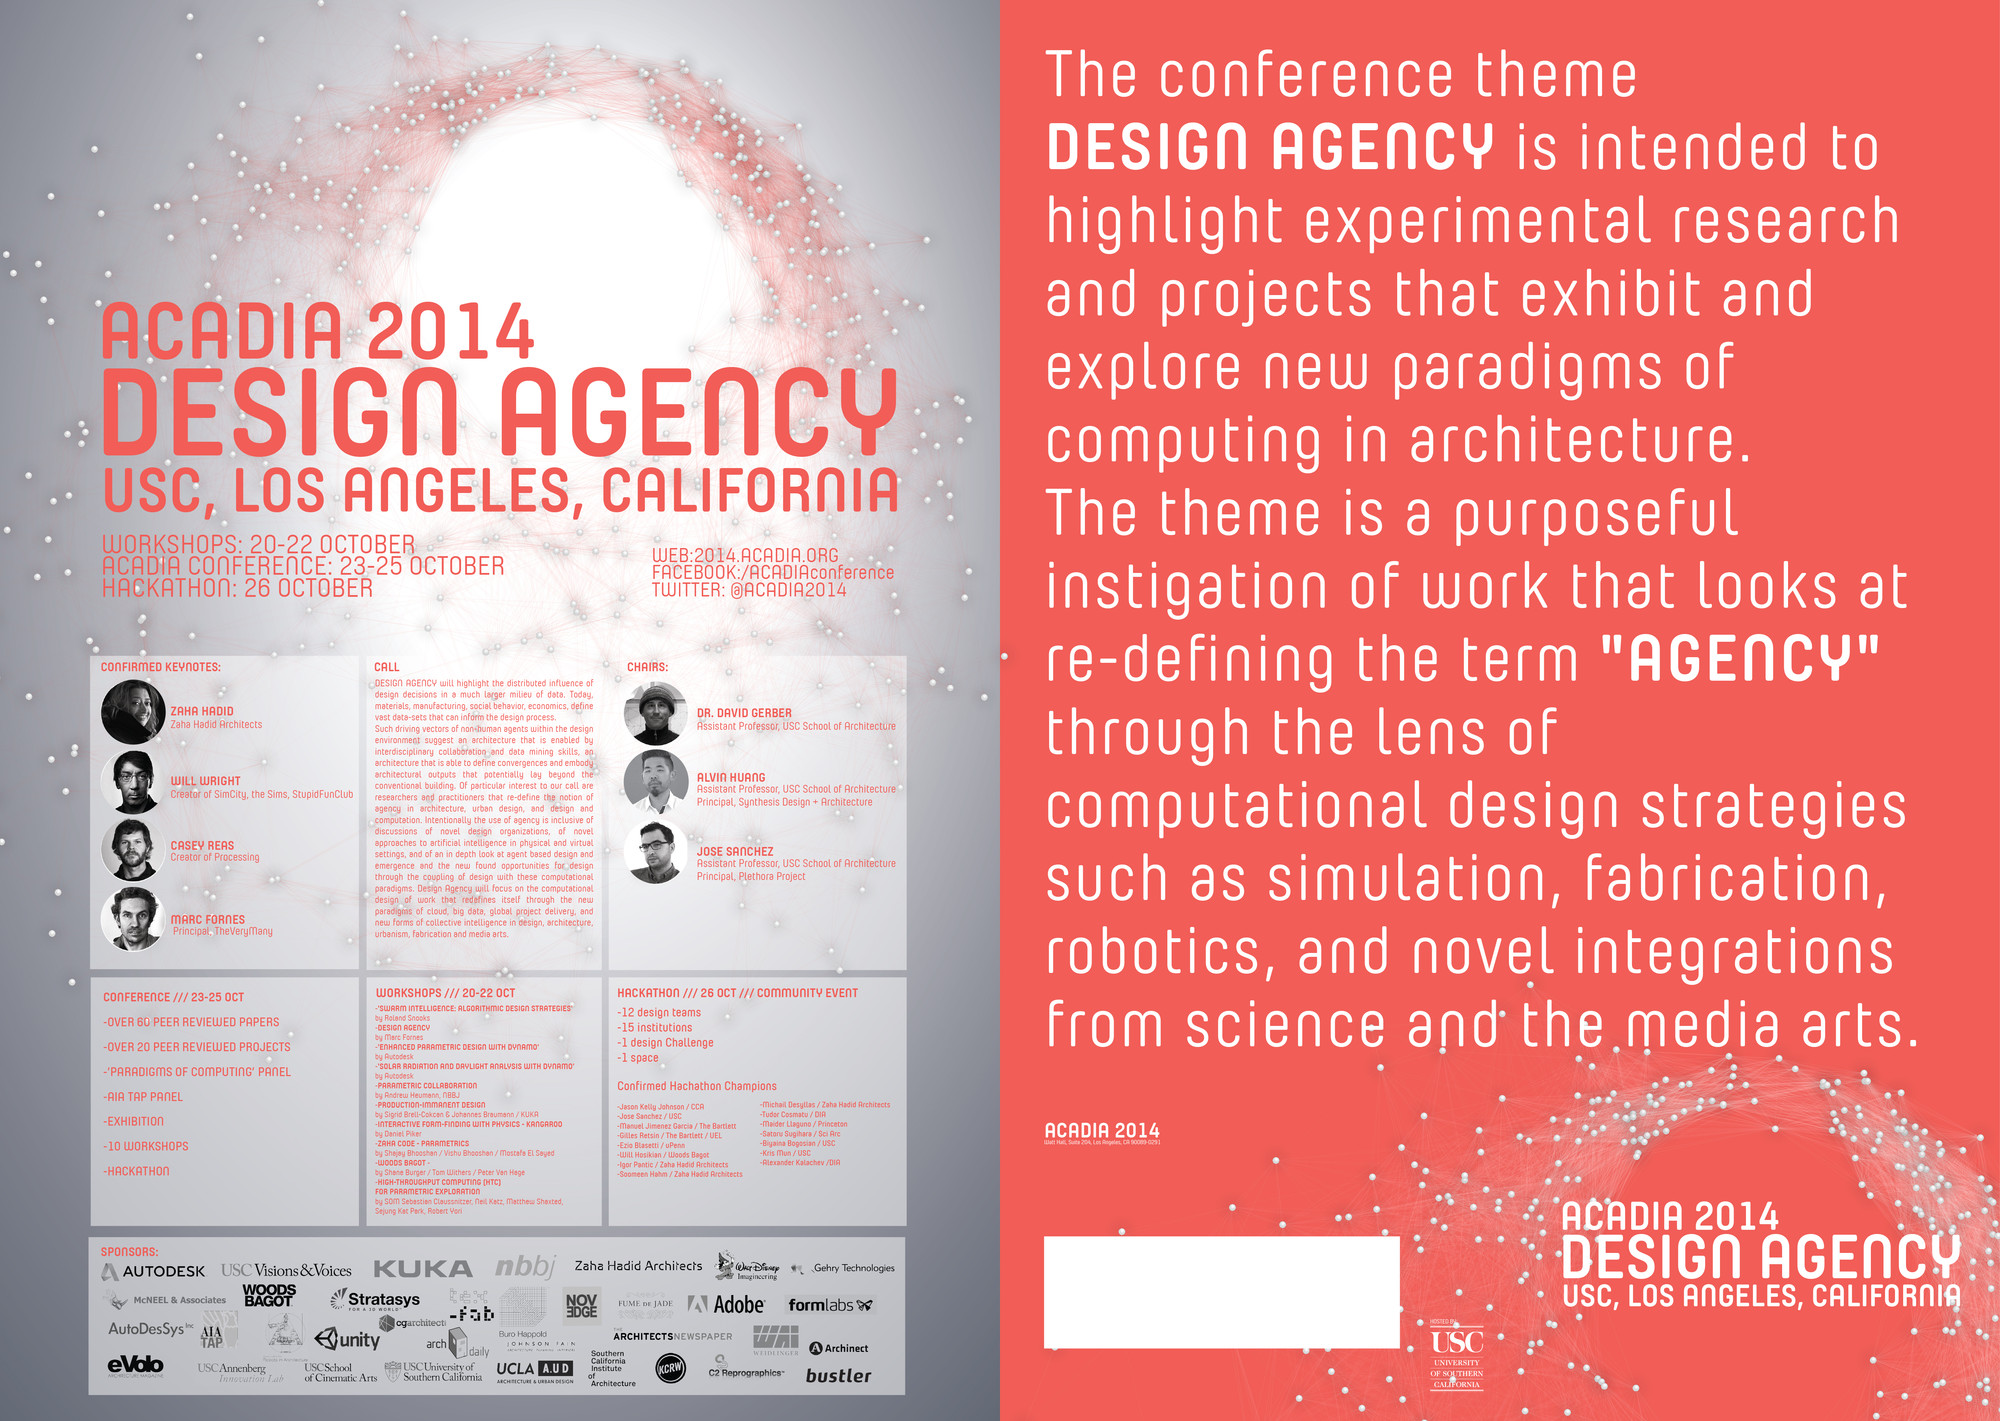 USC's ACADIA 2014 Conference to Focus on Design and Computation, © USC School of Architecture